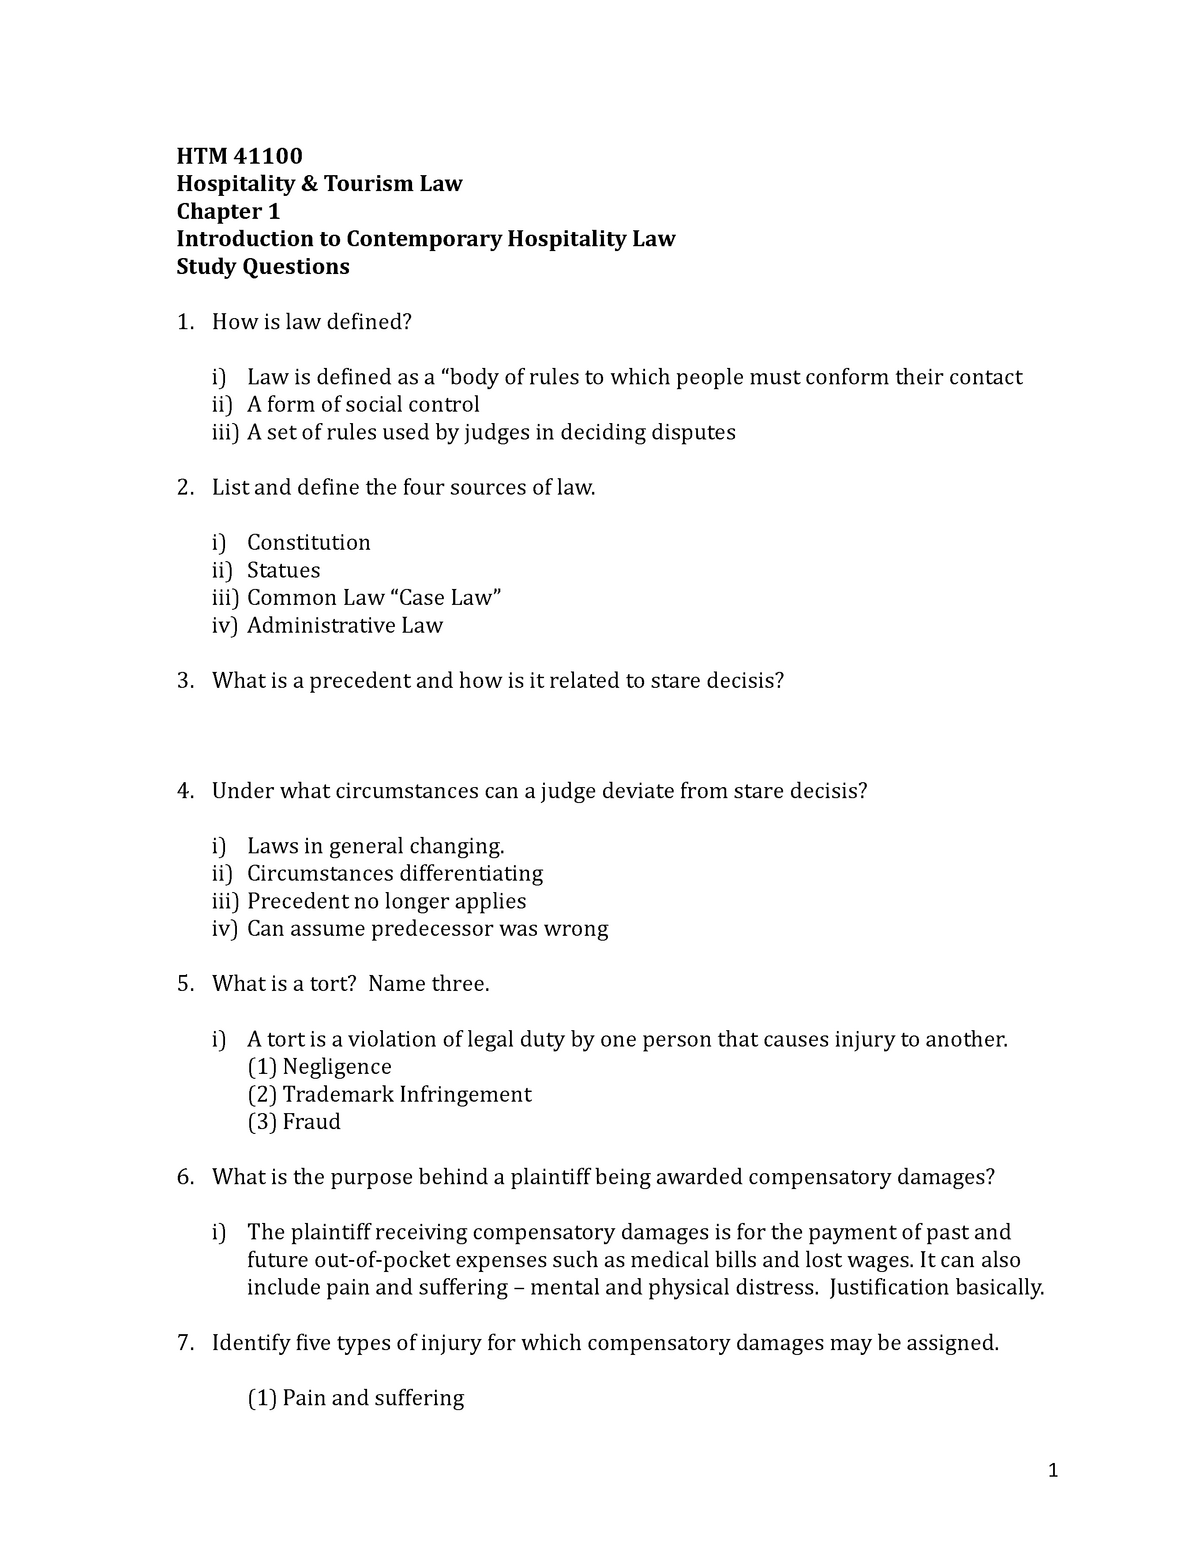 Study Questions - Chapter 1 - Introduction To Contemporary